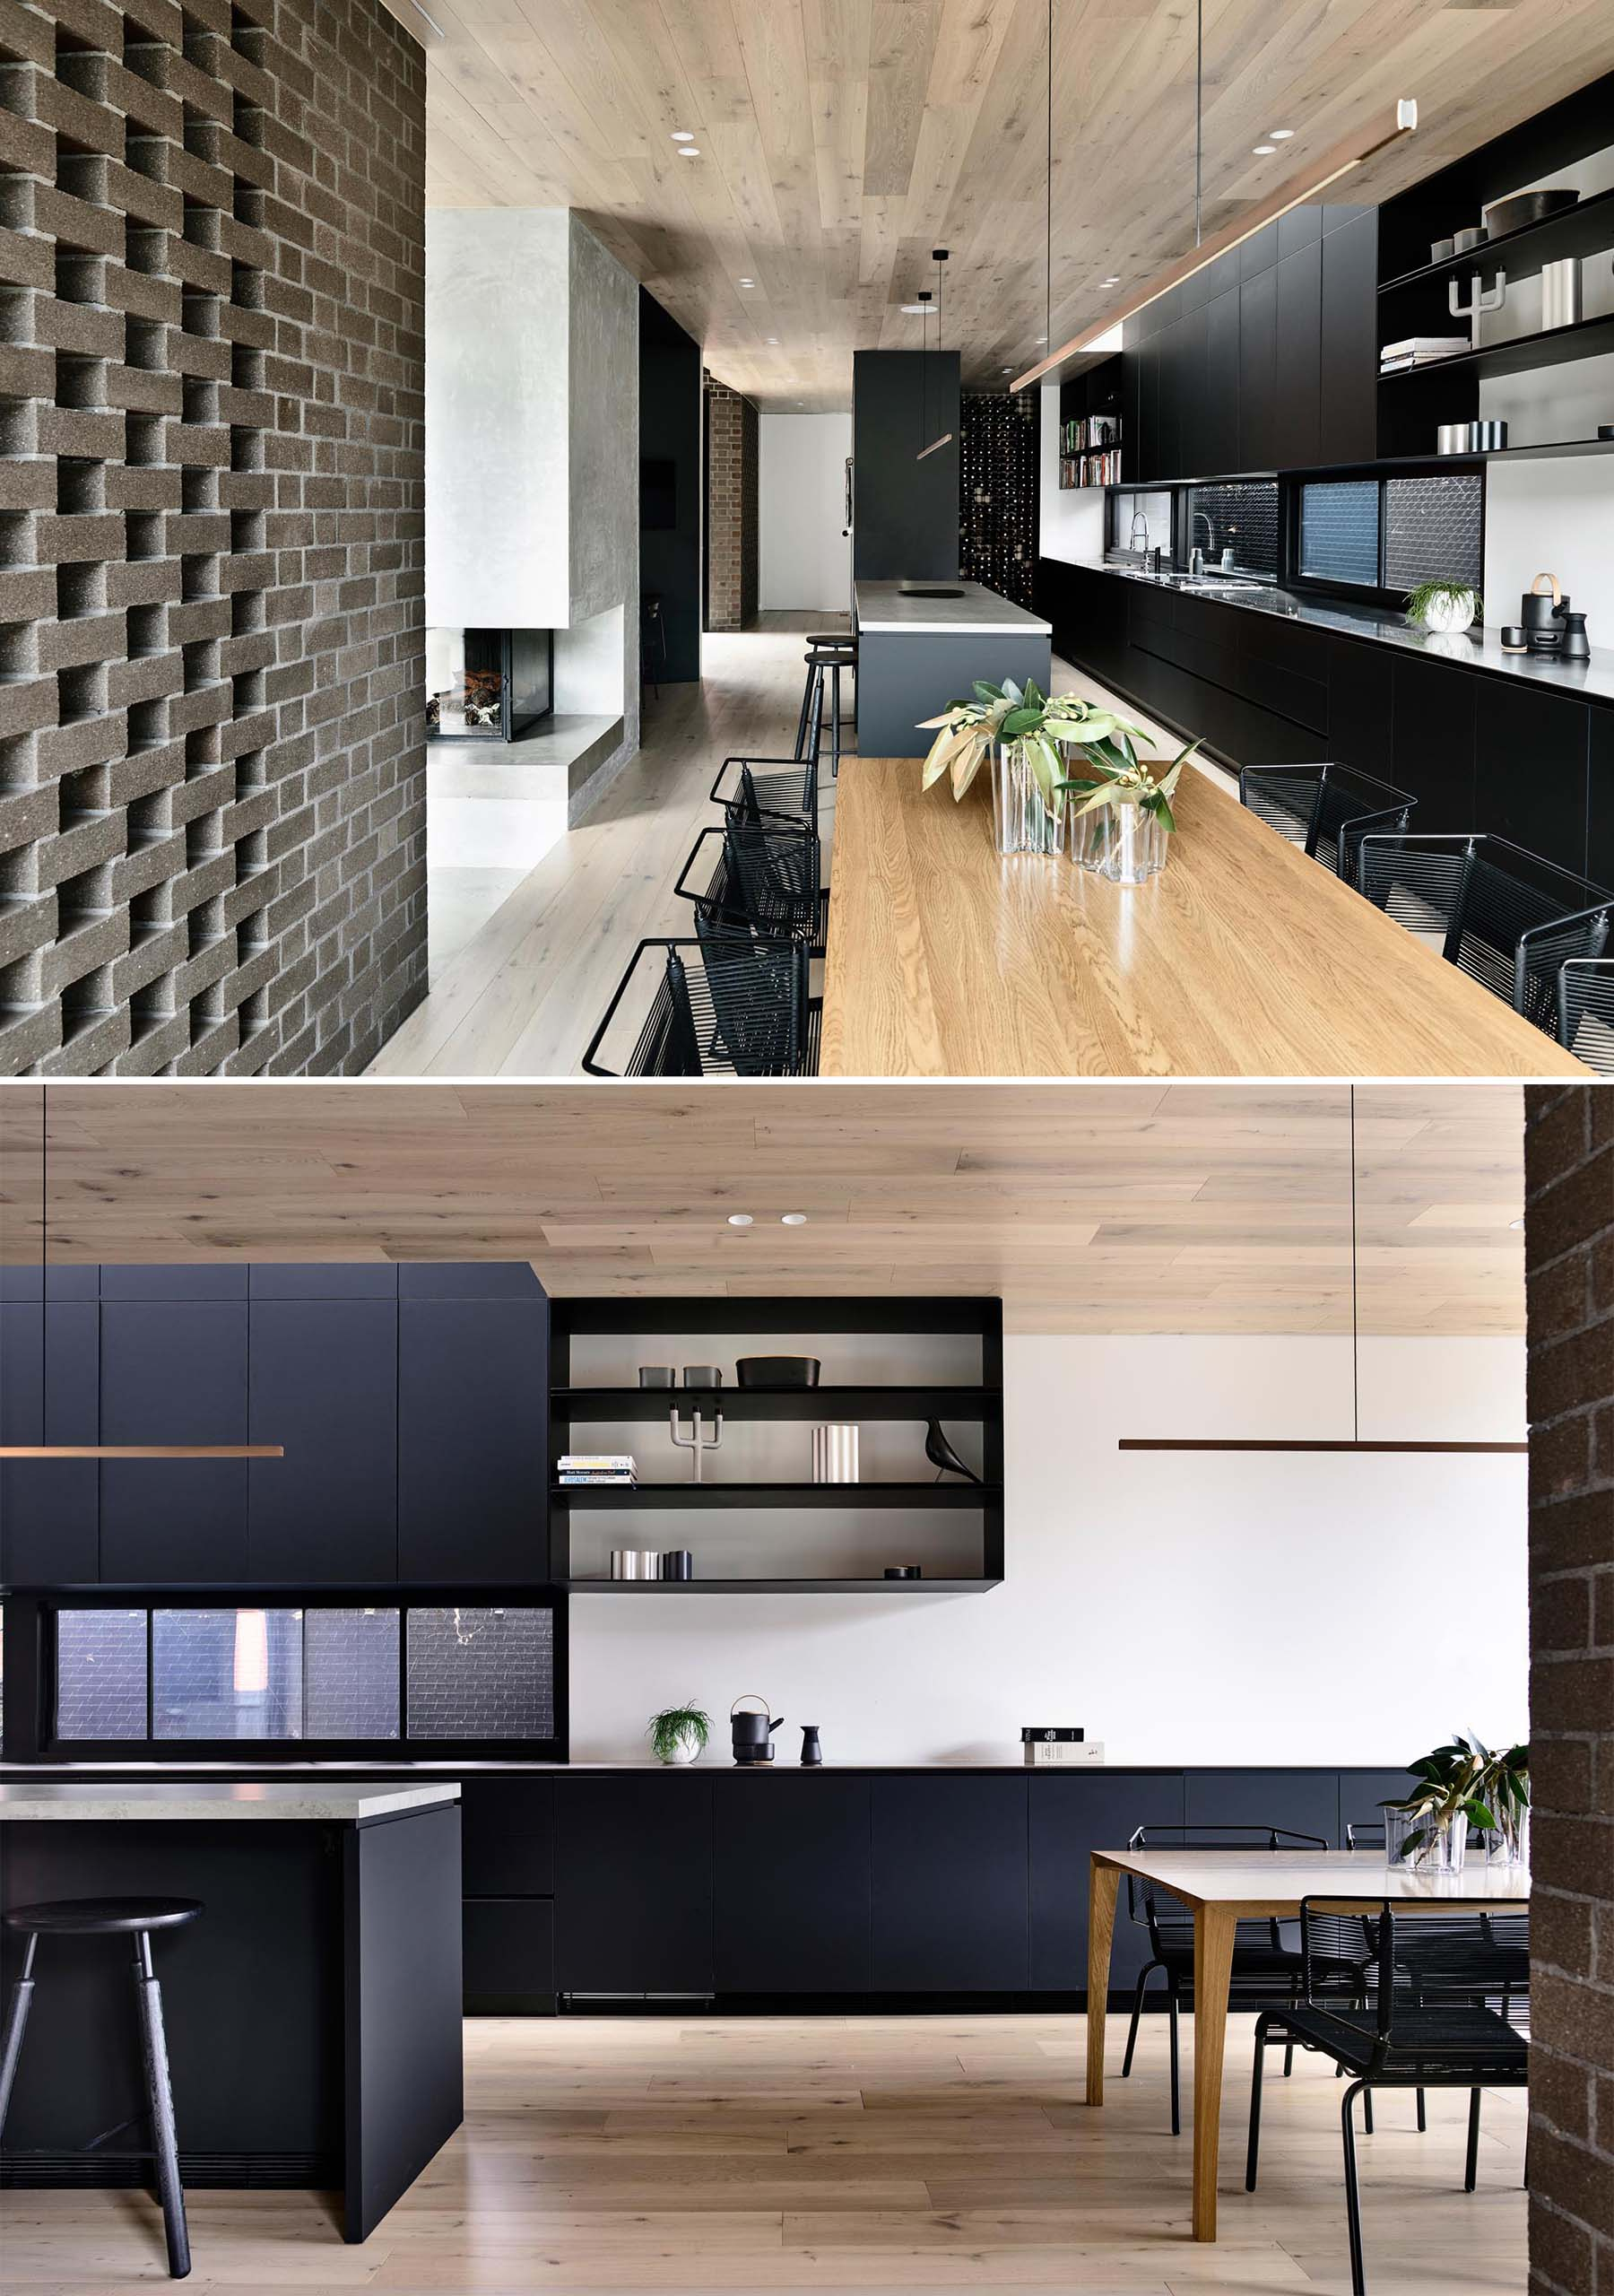 This modern kitchen shares the space with the dining room, however it's the matte black kitchen cabinets that line the wall that command attention.